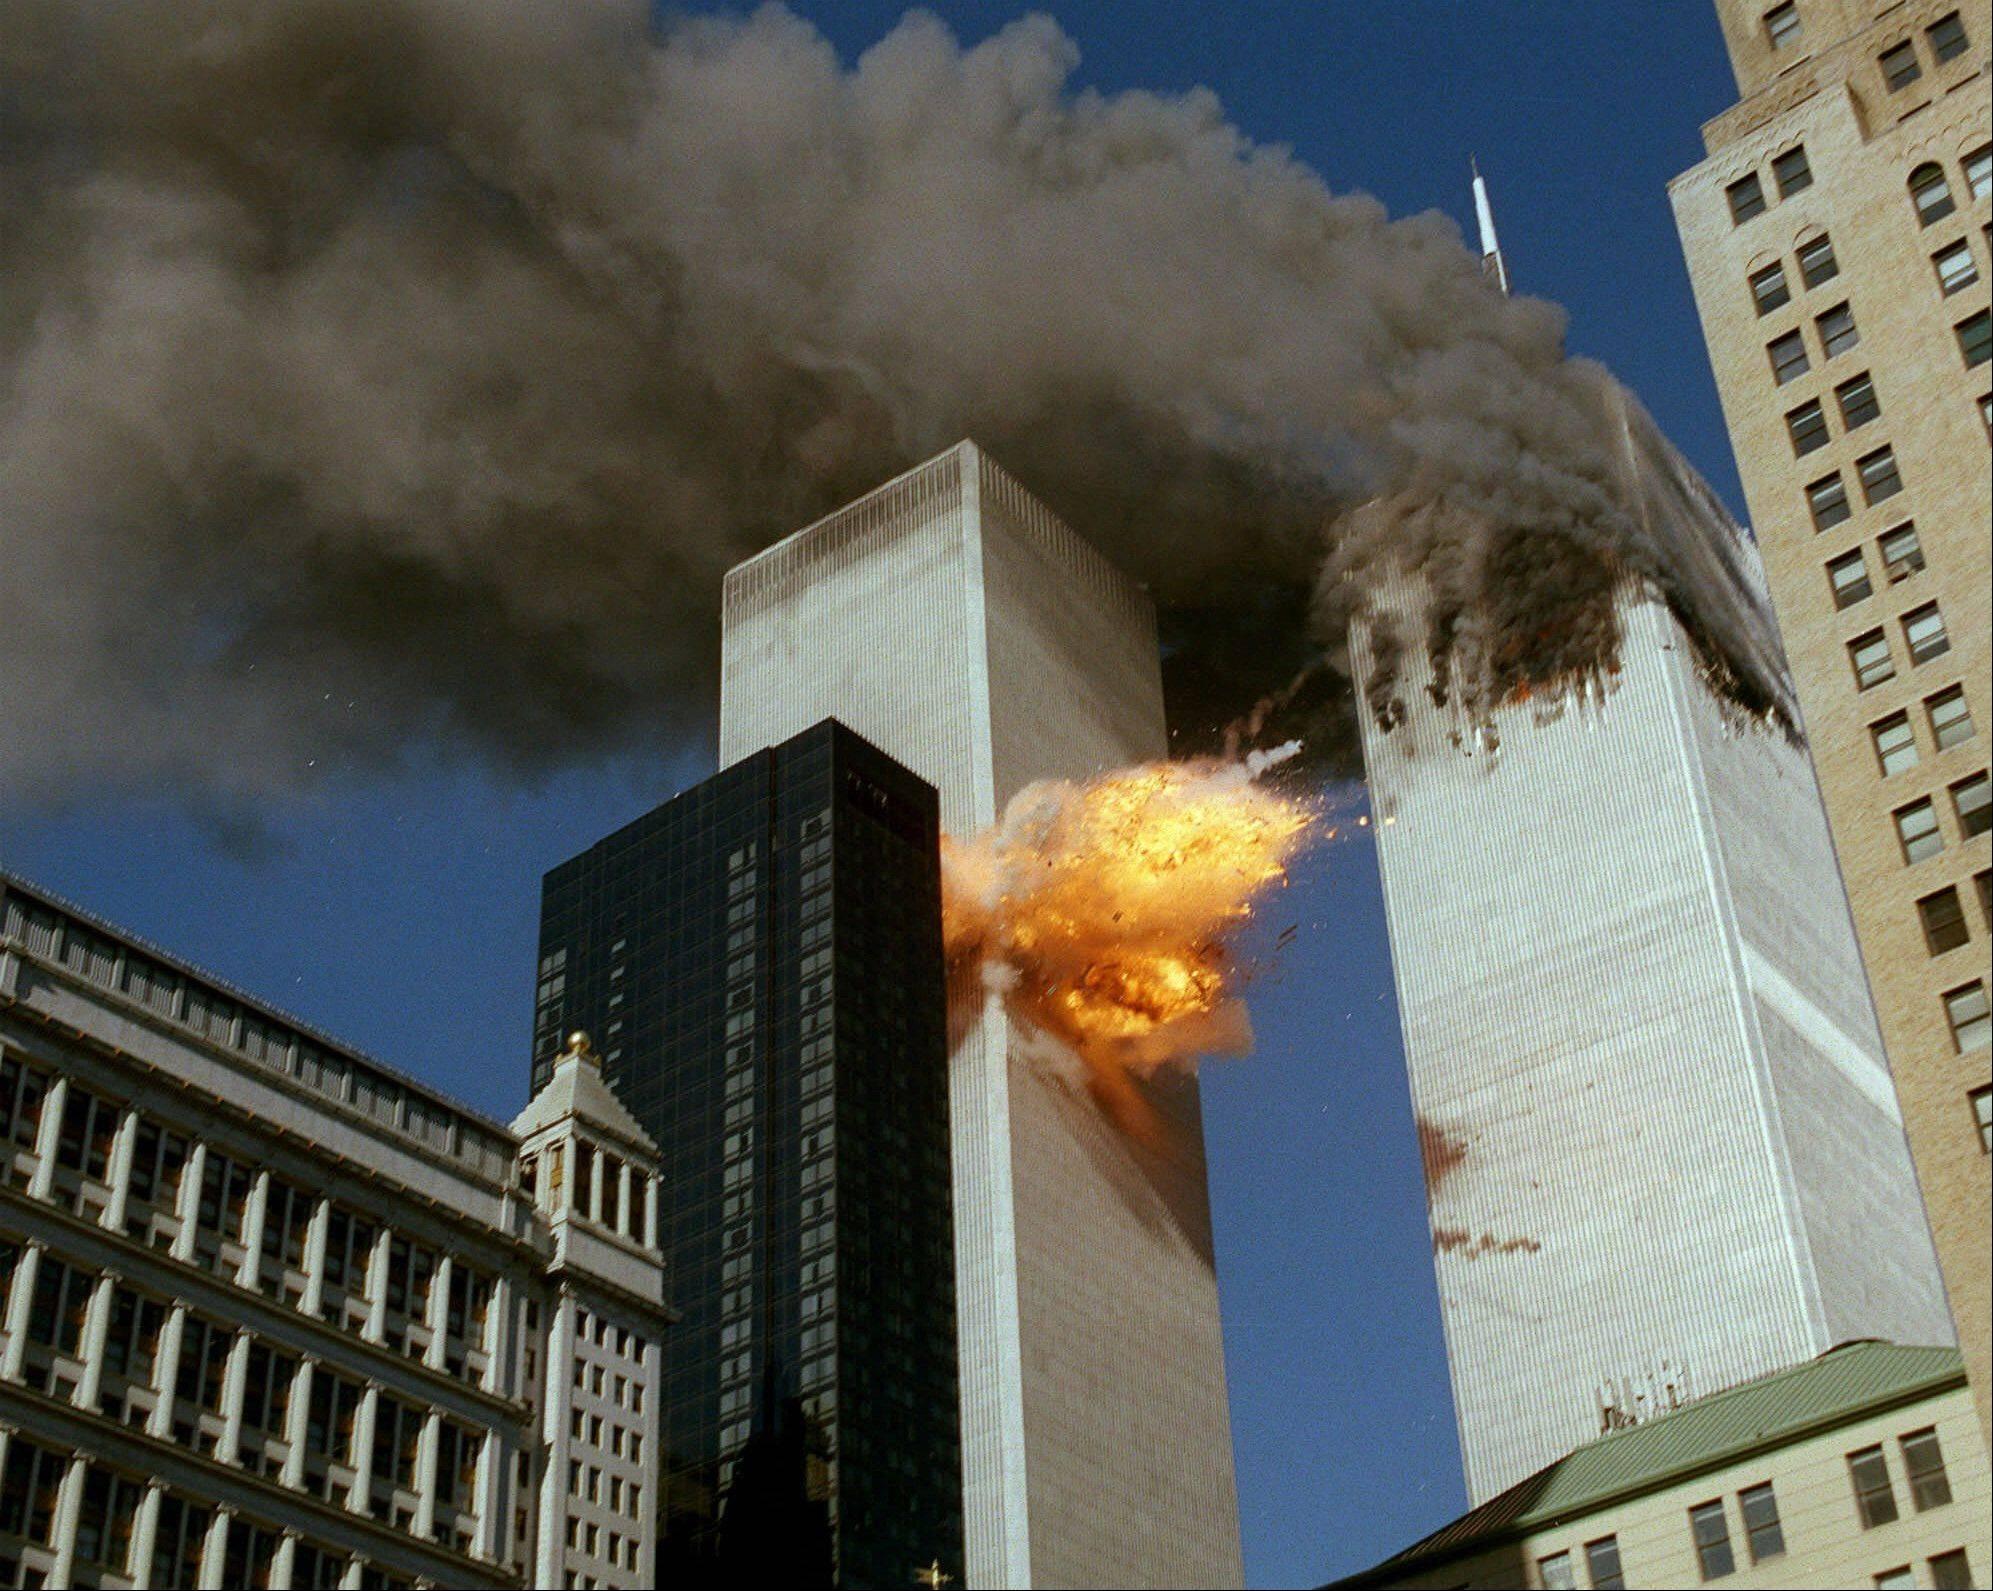 Smoke pours off World Trade Center Tower 1 as flames explode from Tower 2 as it is struck by American Airlines Flight 175, after terrorists crashed hijacked airliners into the buildings.